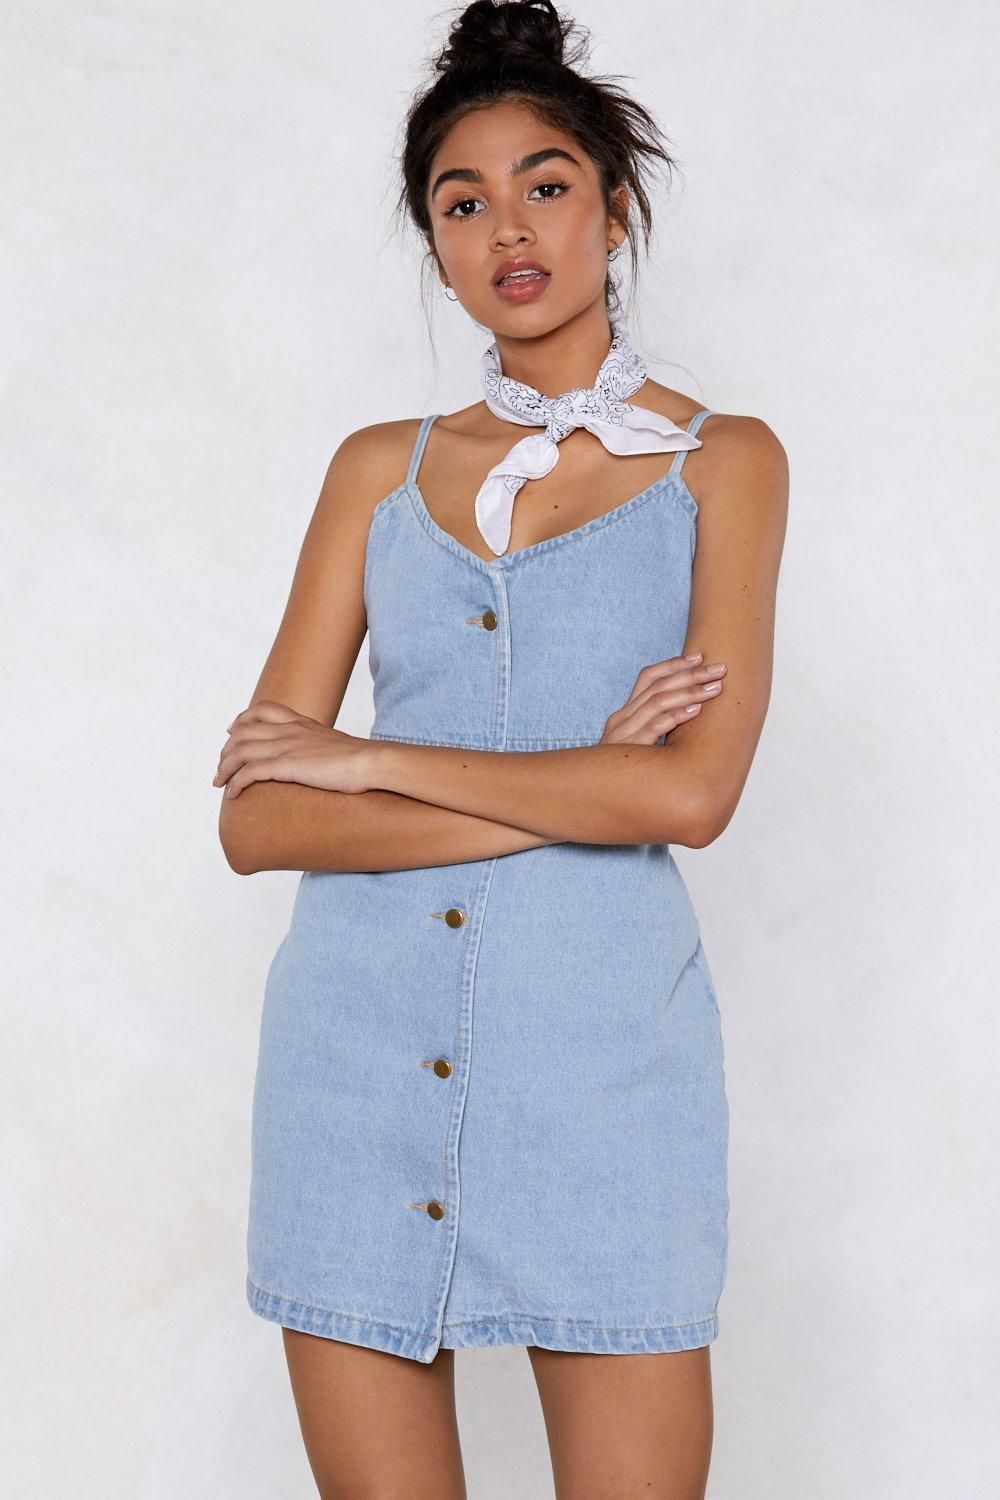 7314eae6f42 The Come Together Dress comes in light wash denim and features a mini